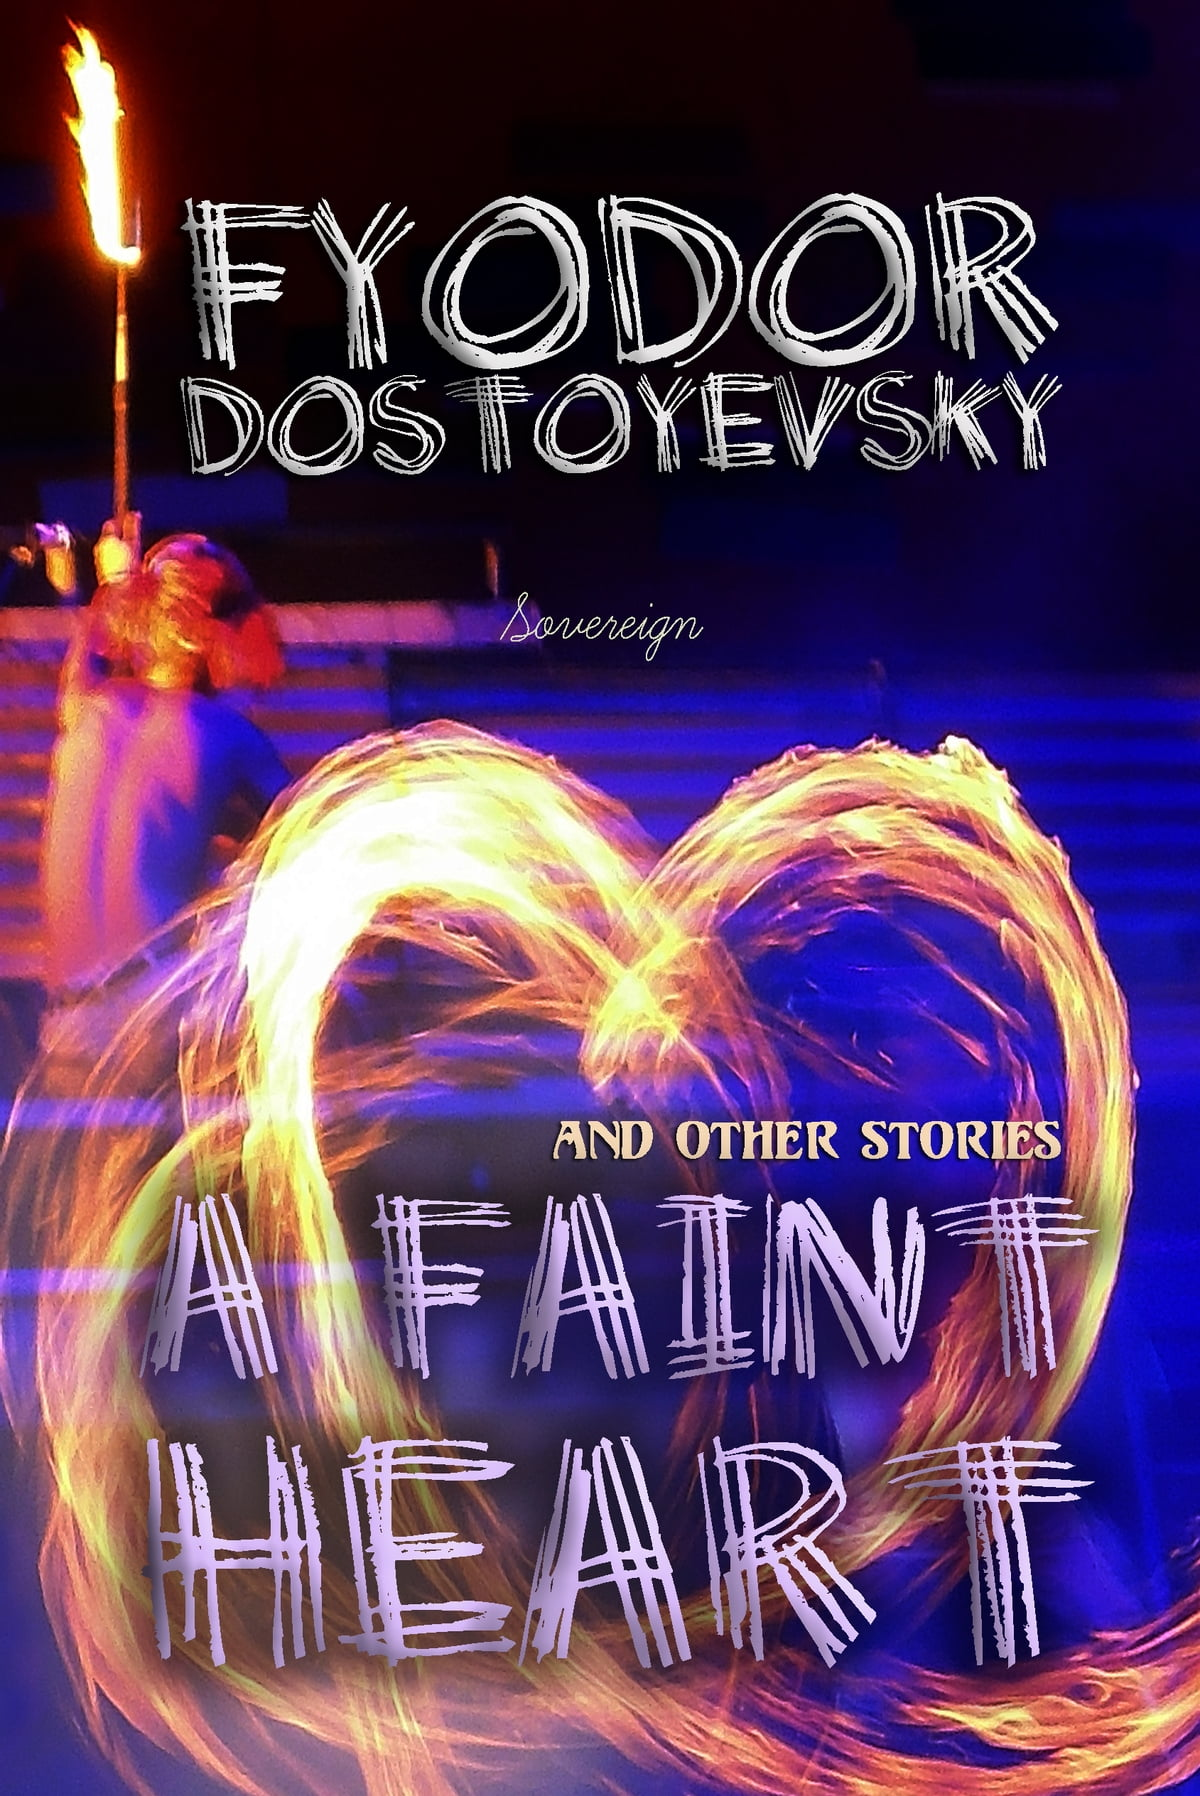 A faint heart and other stories ebook by fyodor dostoyevsky a faint heart and other stories ebook by fyodor dostoyevsky 9781910150160 rakuten kobo fandeluxe Ebook collections